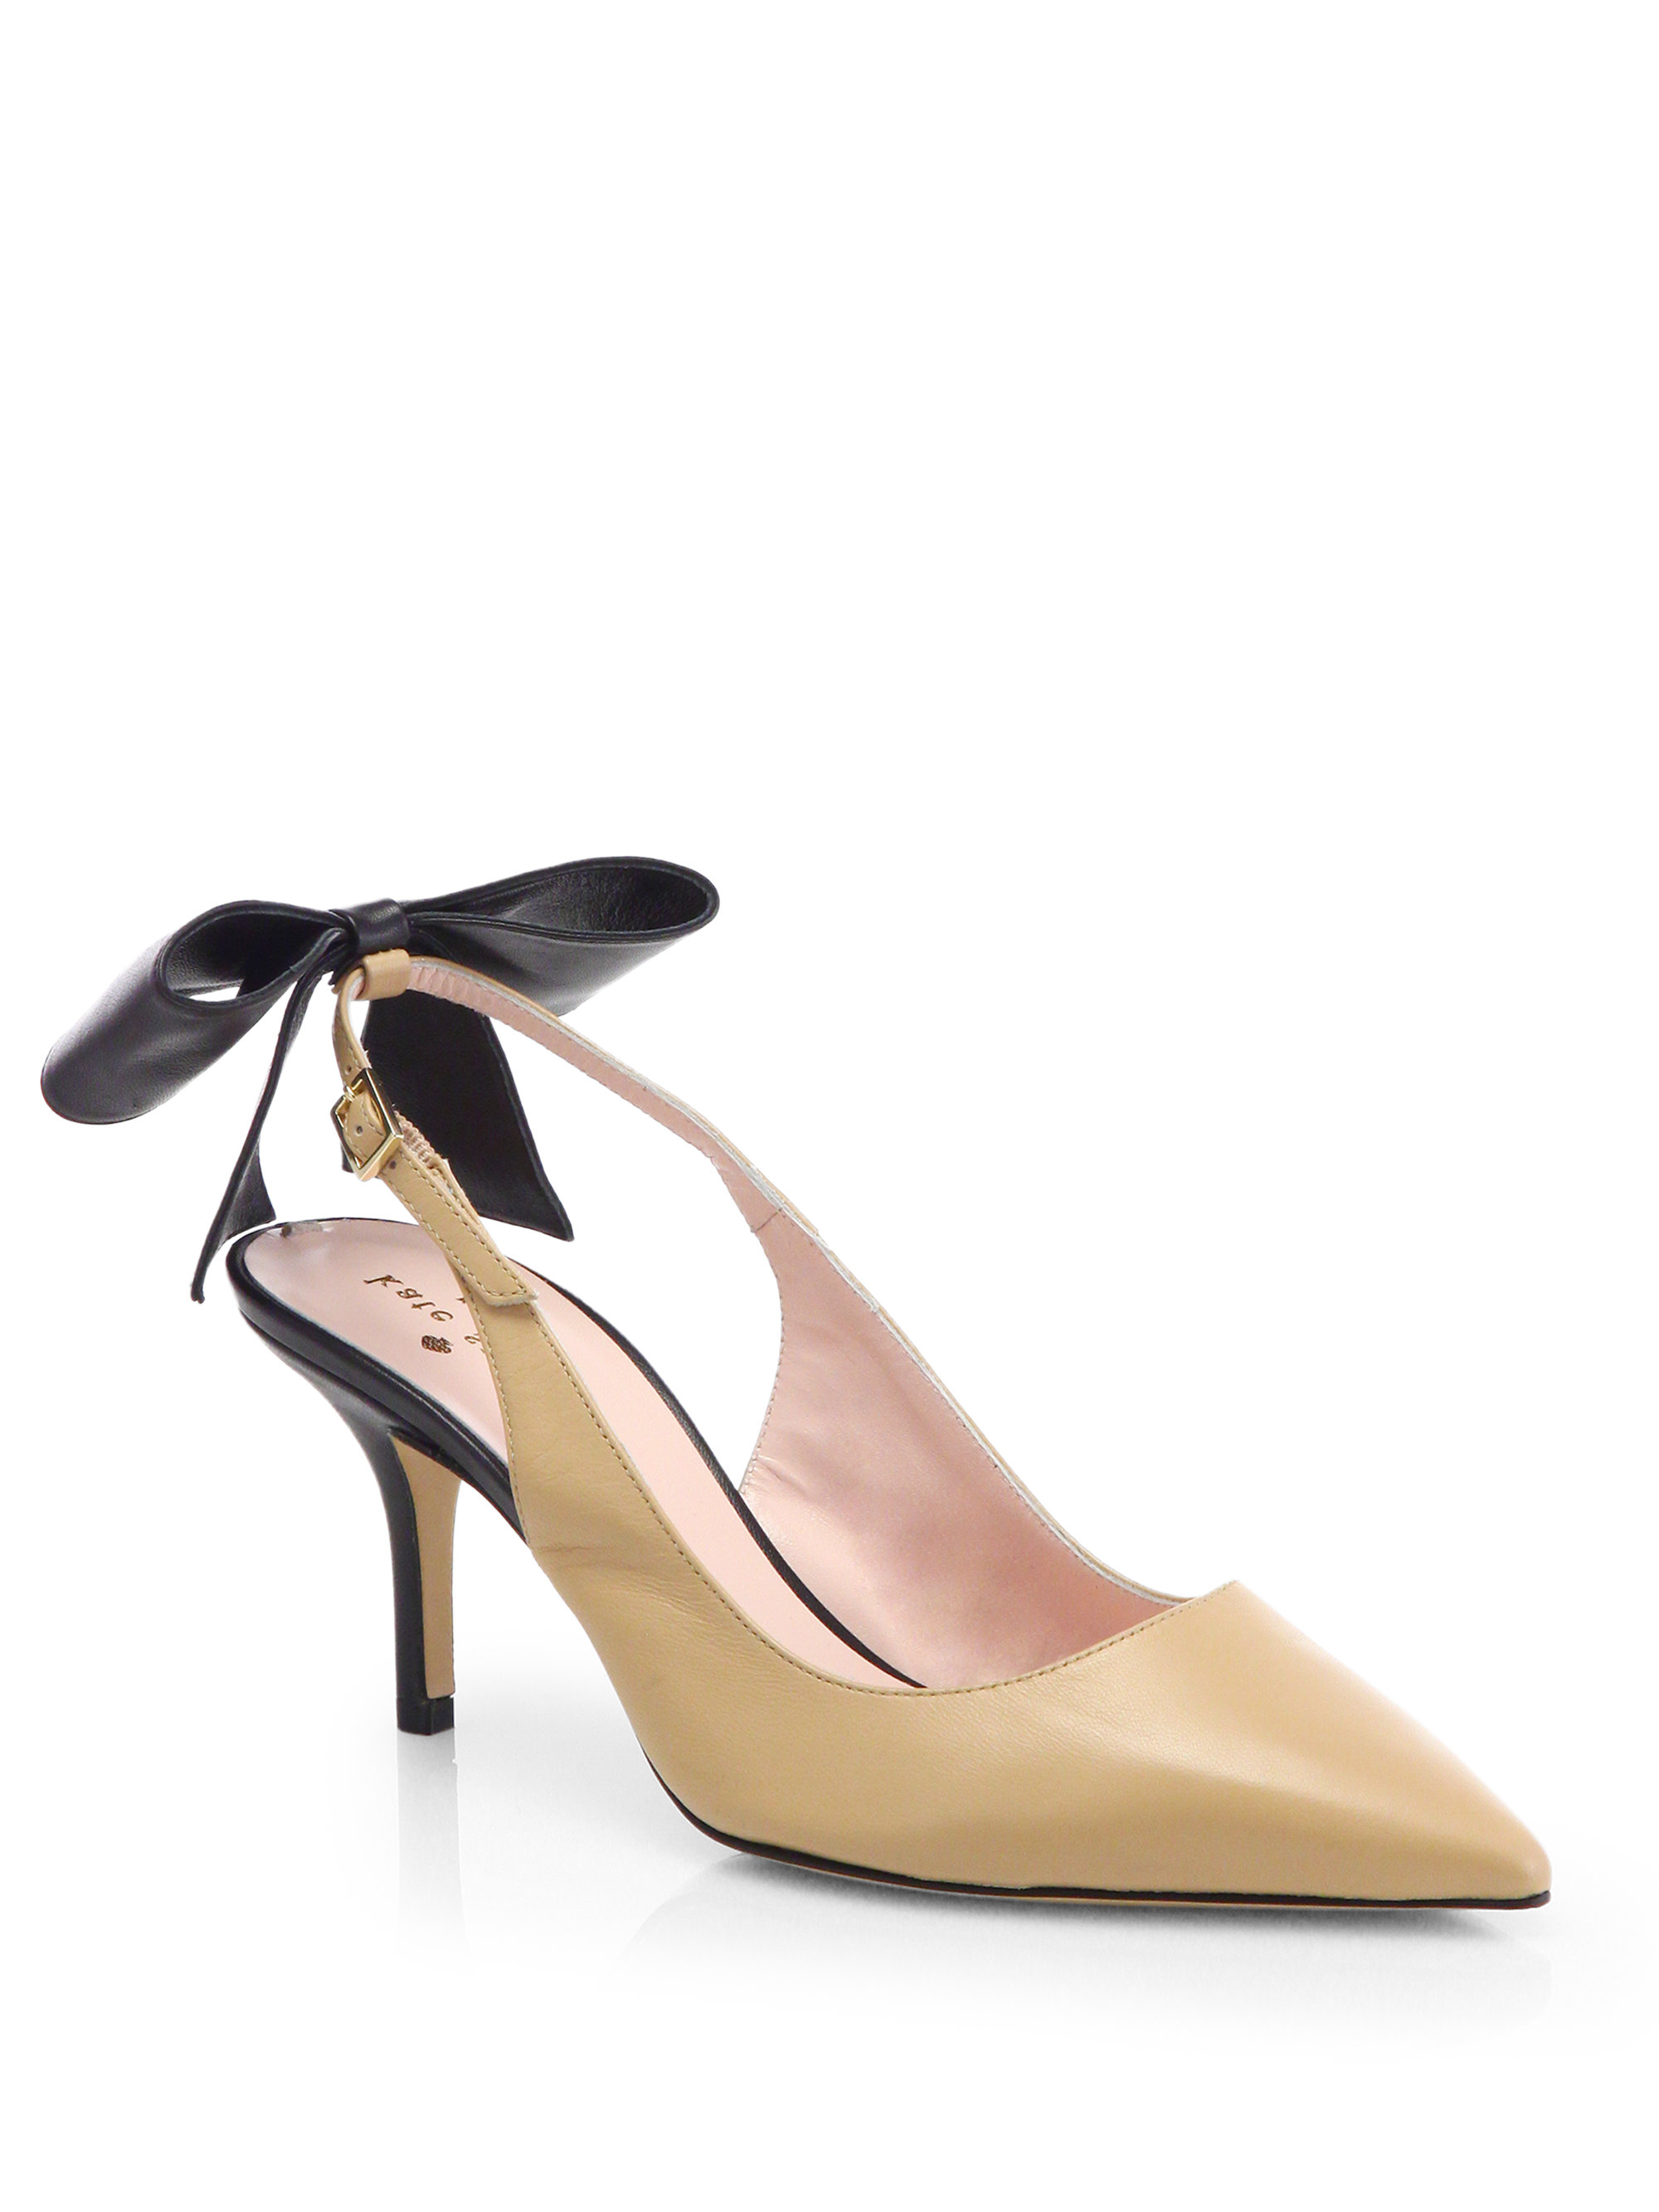 bbd498628c7 Lyst - Kate Spade Jax Leather Bow Slingback Pumps in Natural